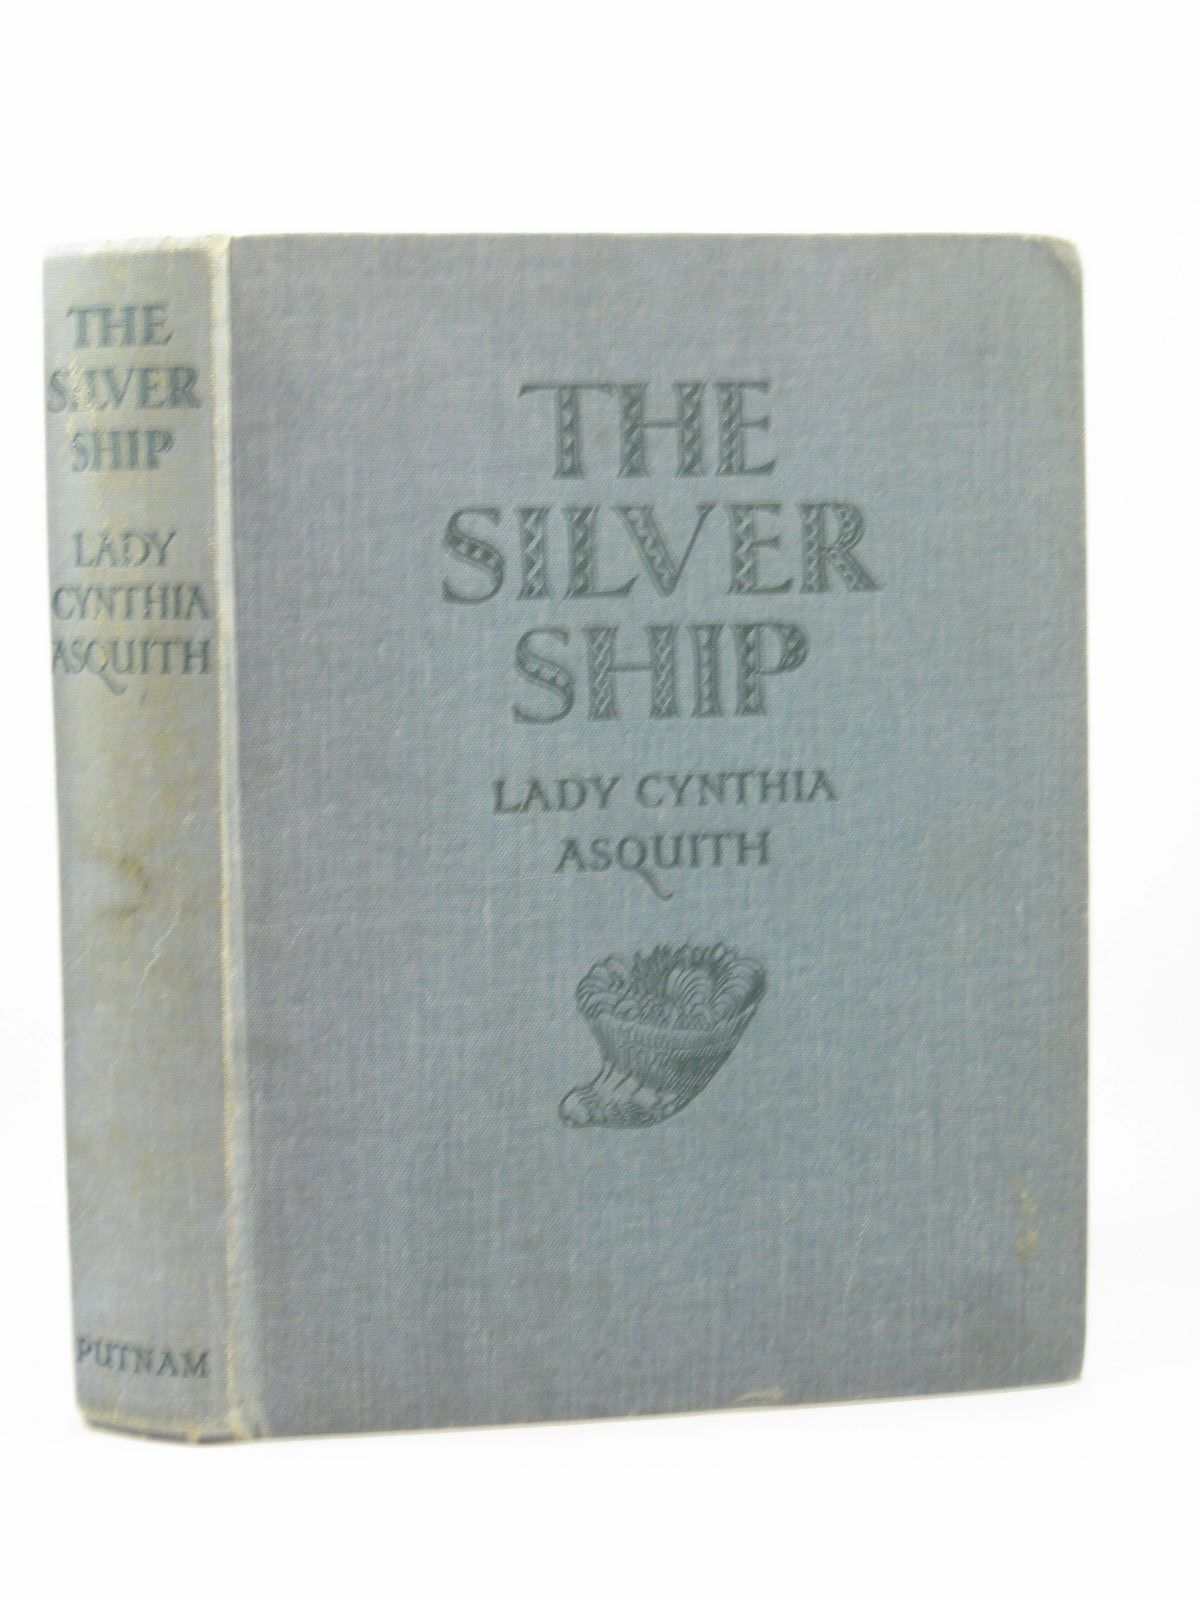 Photo of THE SILVER SHIP written by Asquith, Cynthia Thirkell, Angela Klickmann, Flora et al, illustrated by Watson, A.H. Brock, H.M. MacDonald, A.K. et al., published by Putnam (STOCK CODE: 1312284)  for sale by Stella & Rose's Books